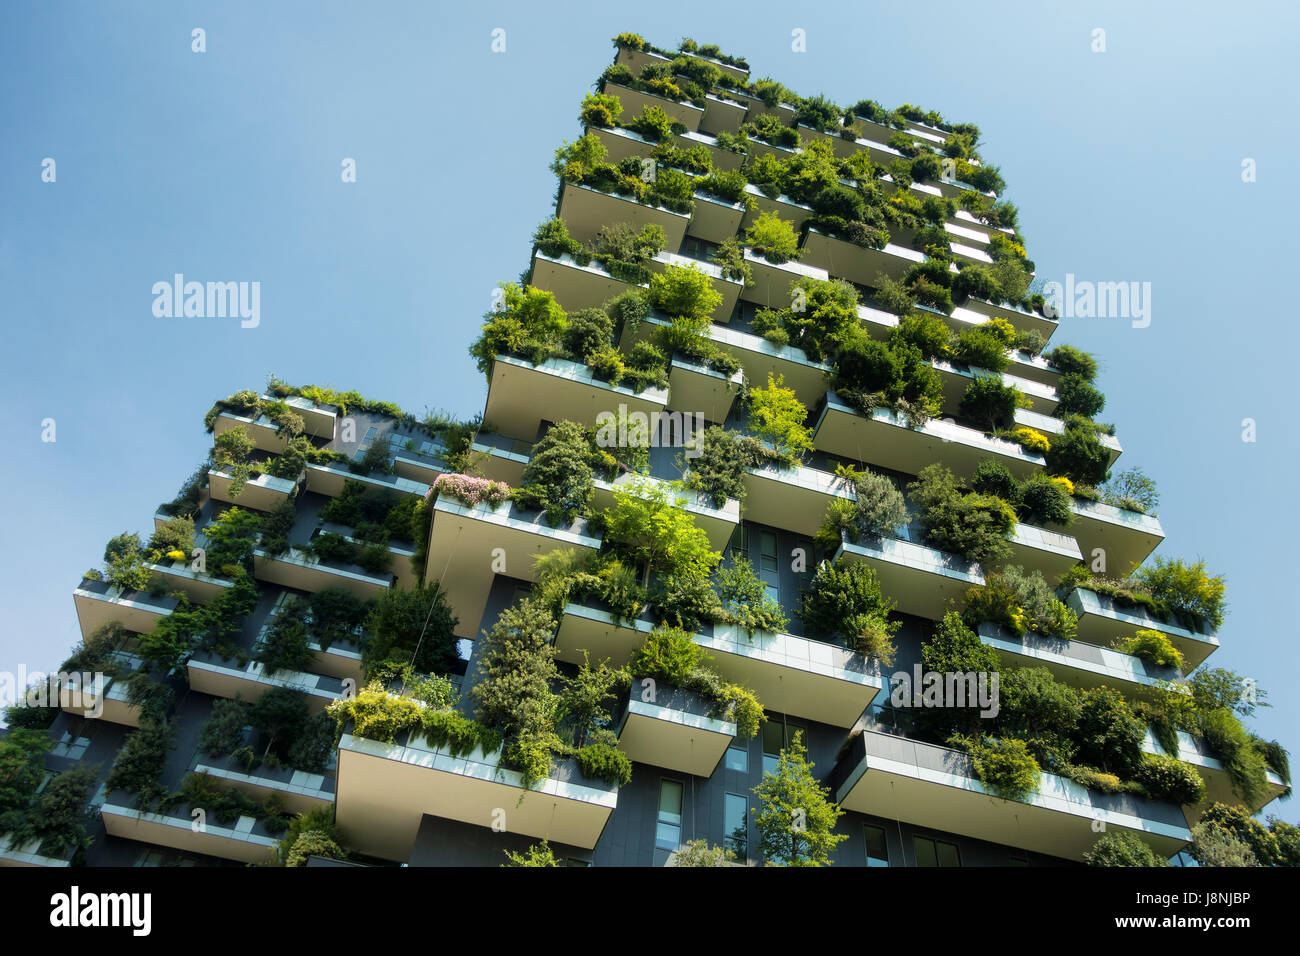 sustainable green building, Bosco verticale in Milan - Stock Image